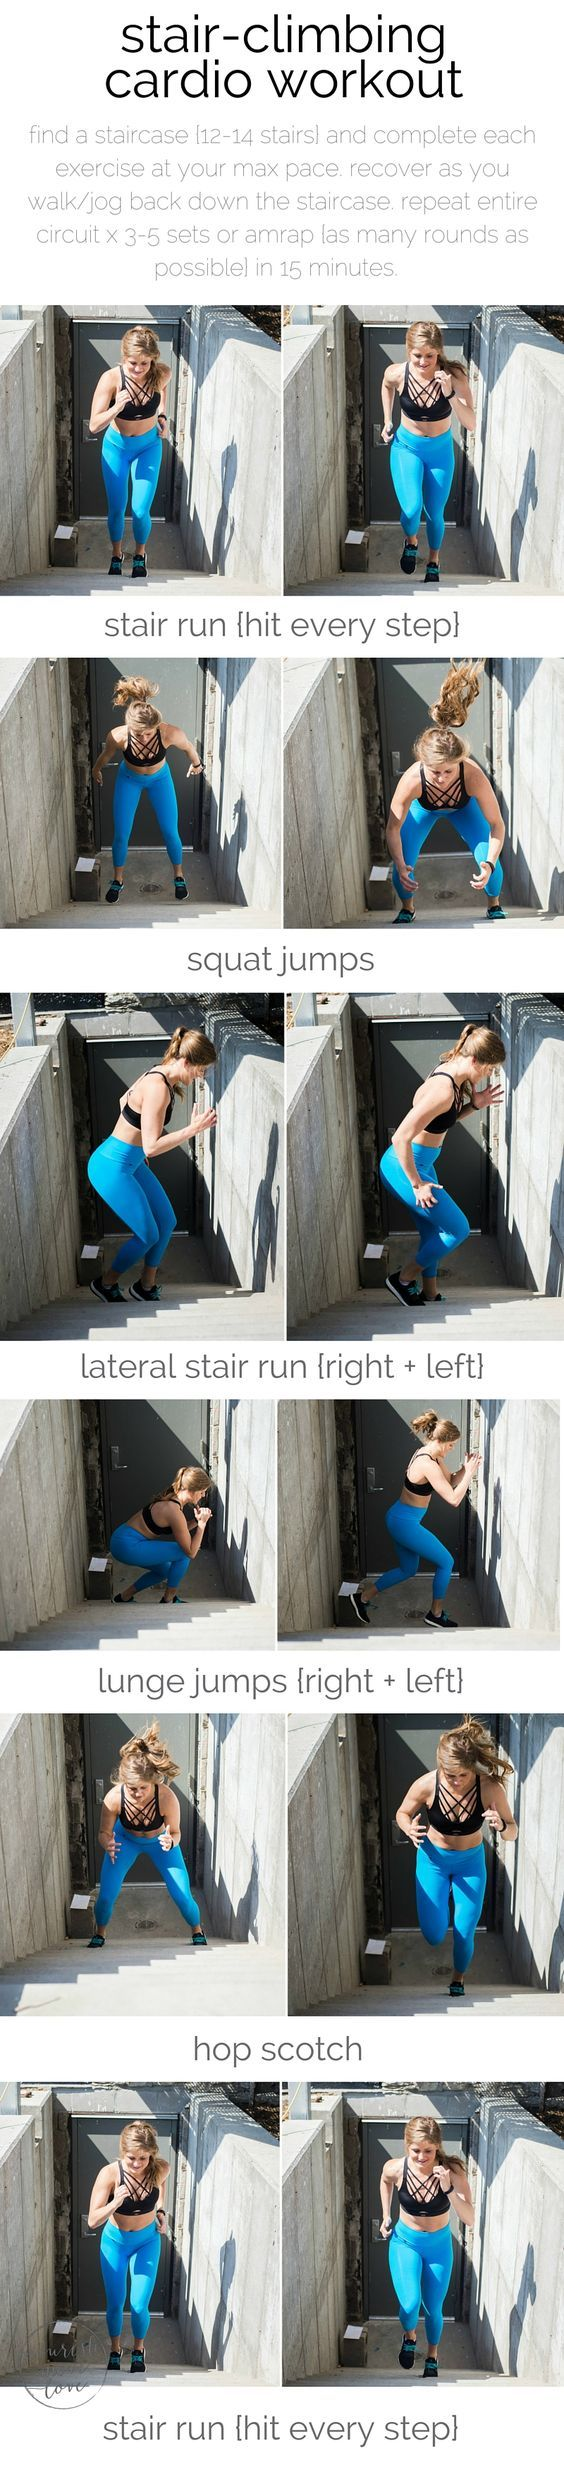 stair-climbing cardio workout | the ultimate stair-climbing, cardio workout for serious fitness gains {and a lifted booty}. | www.nourishmovelove.com